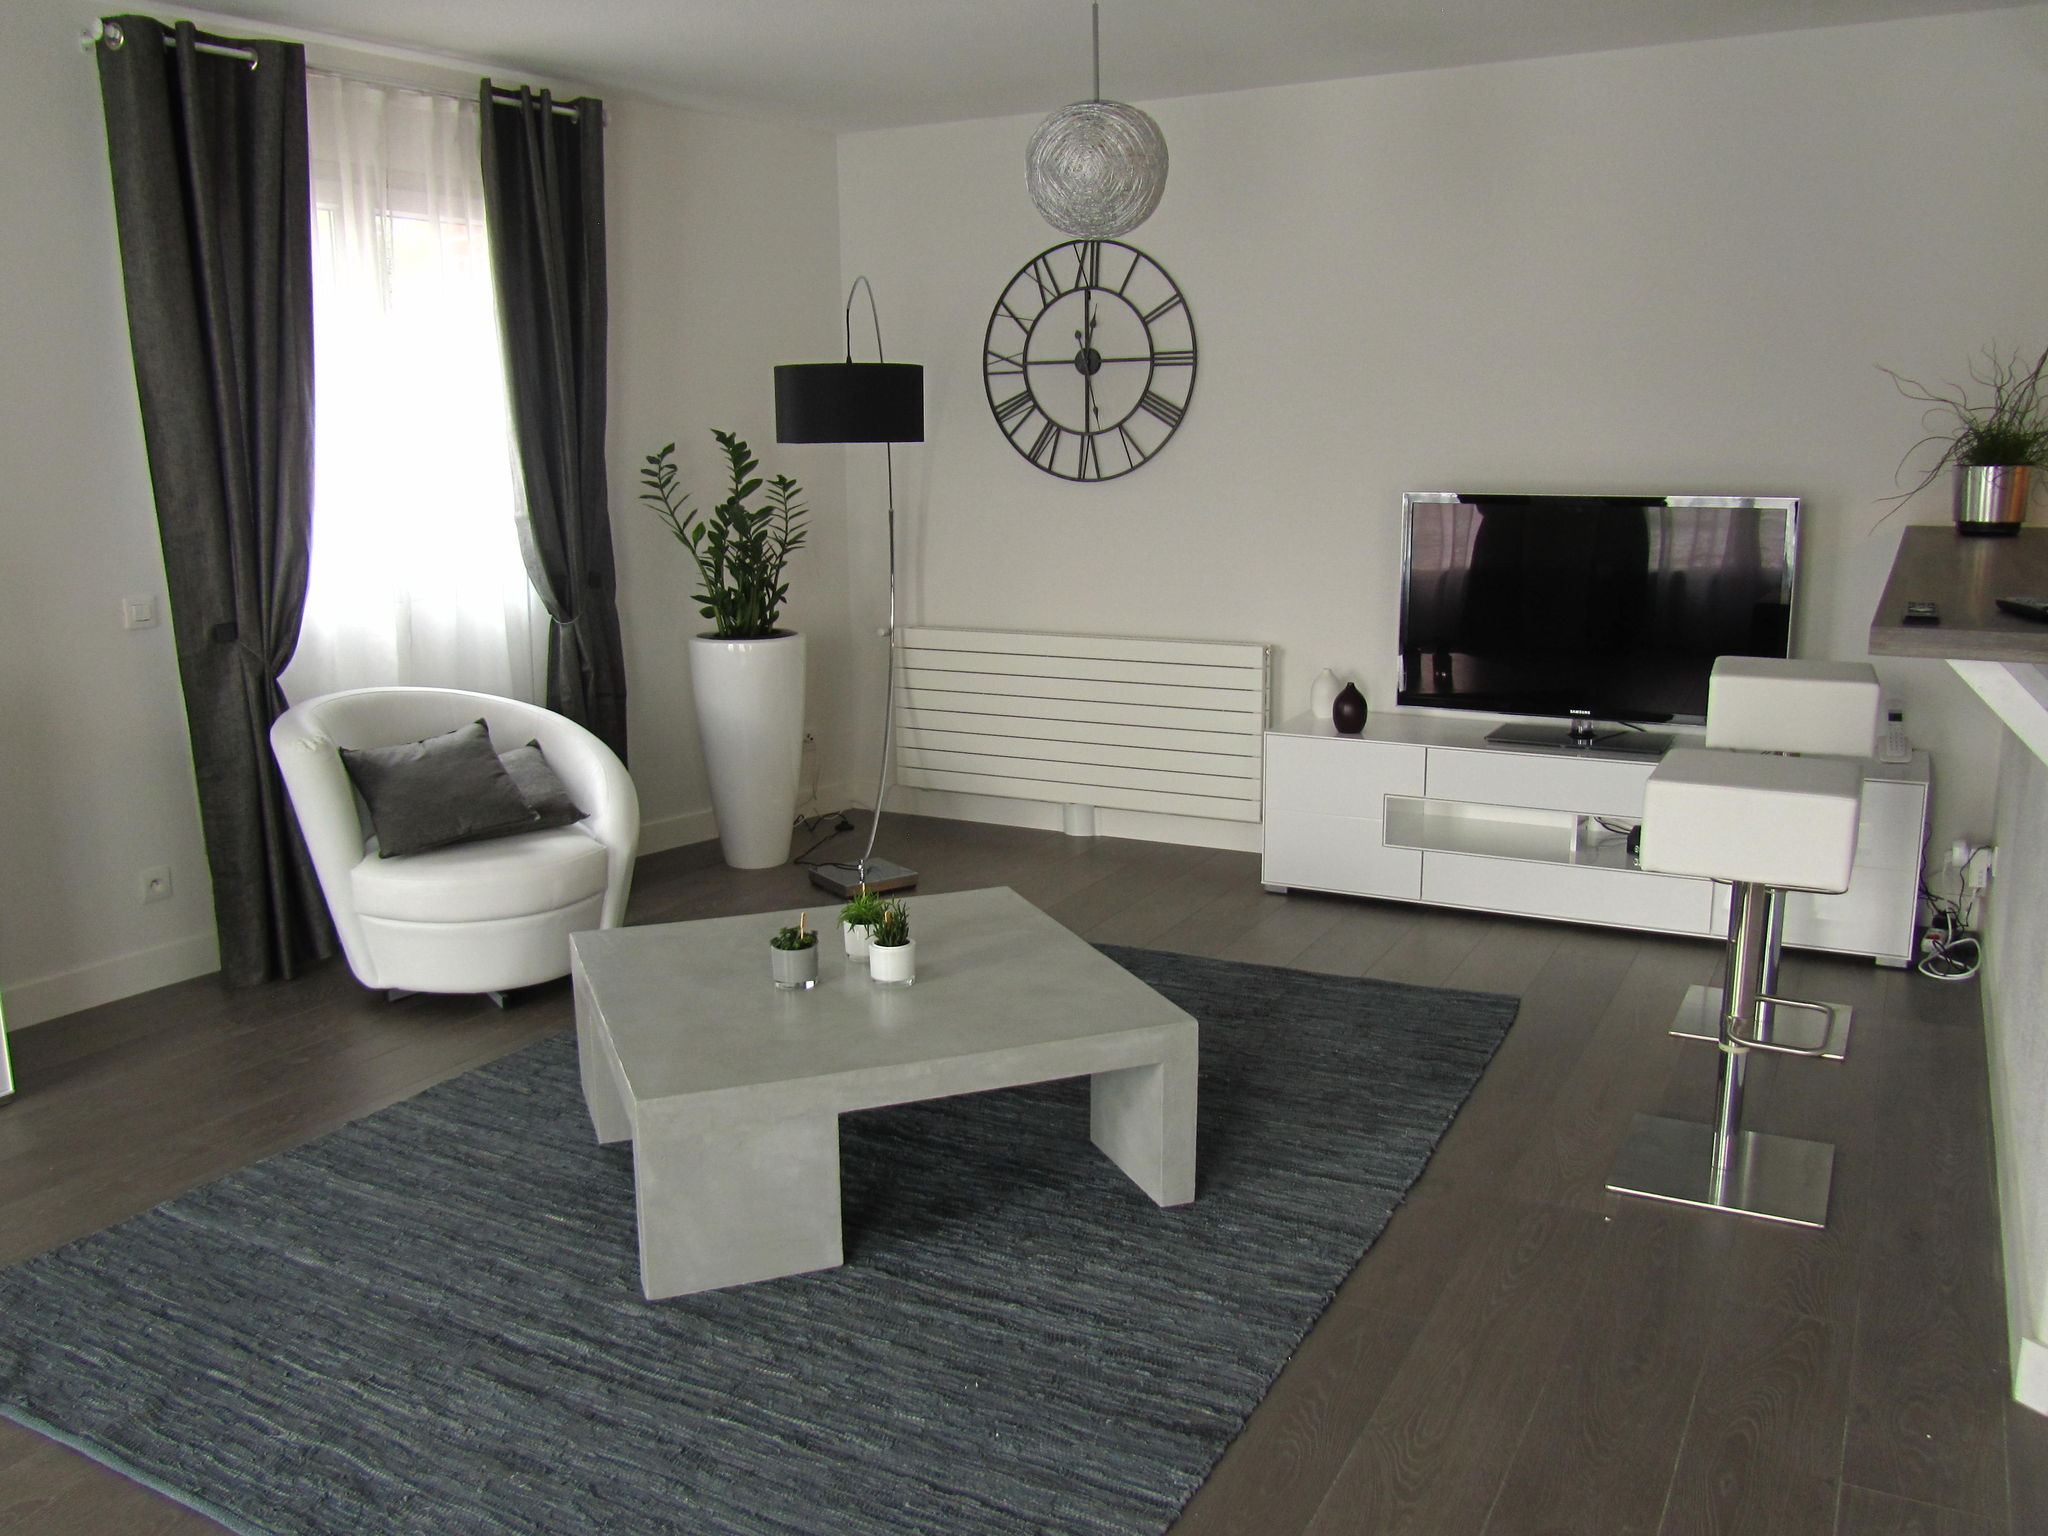 Table de salon en beton cire gris photo de beton cire le mobilier cat - Sejour noir et blanc ...